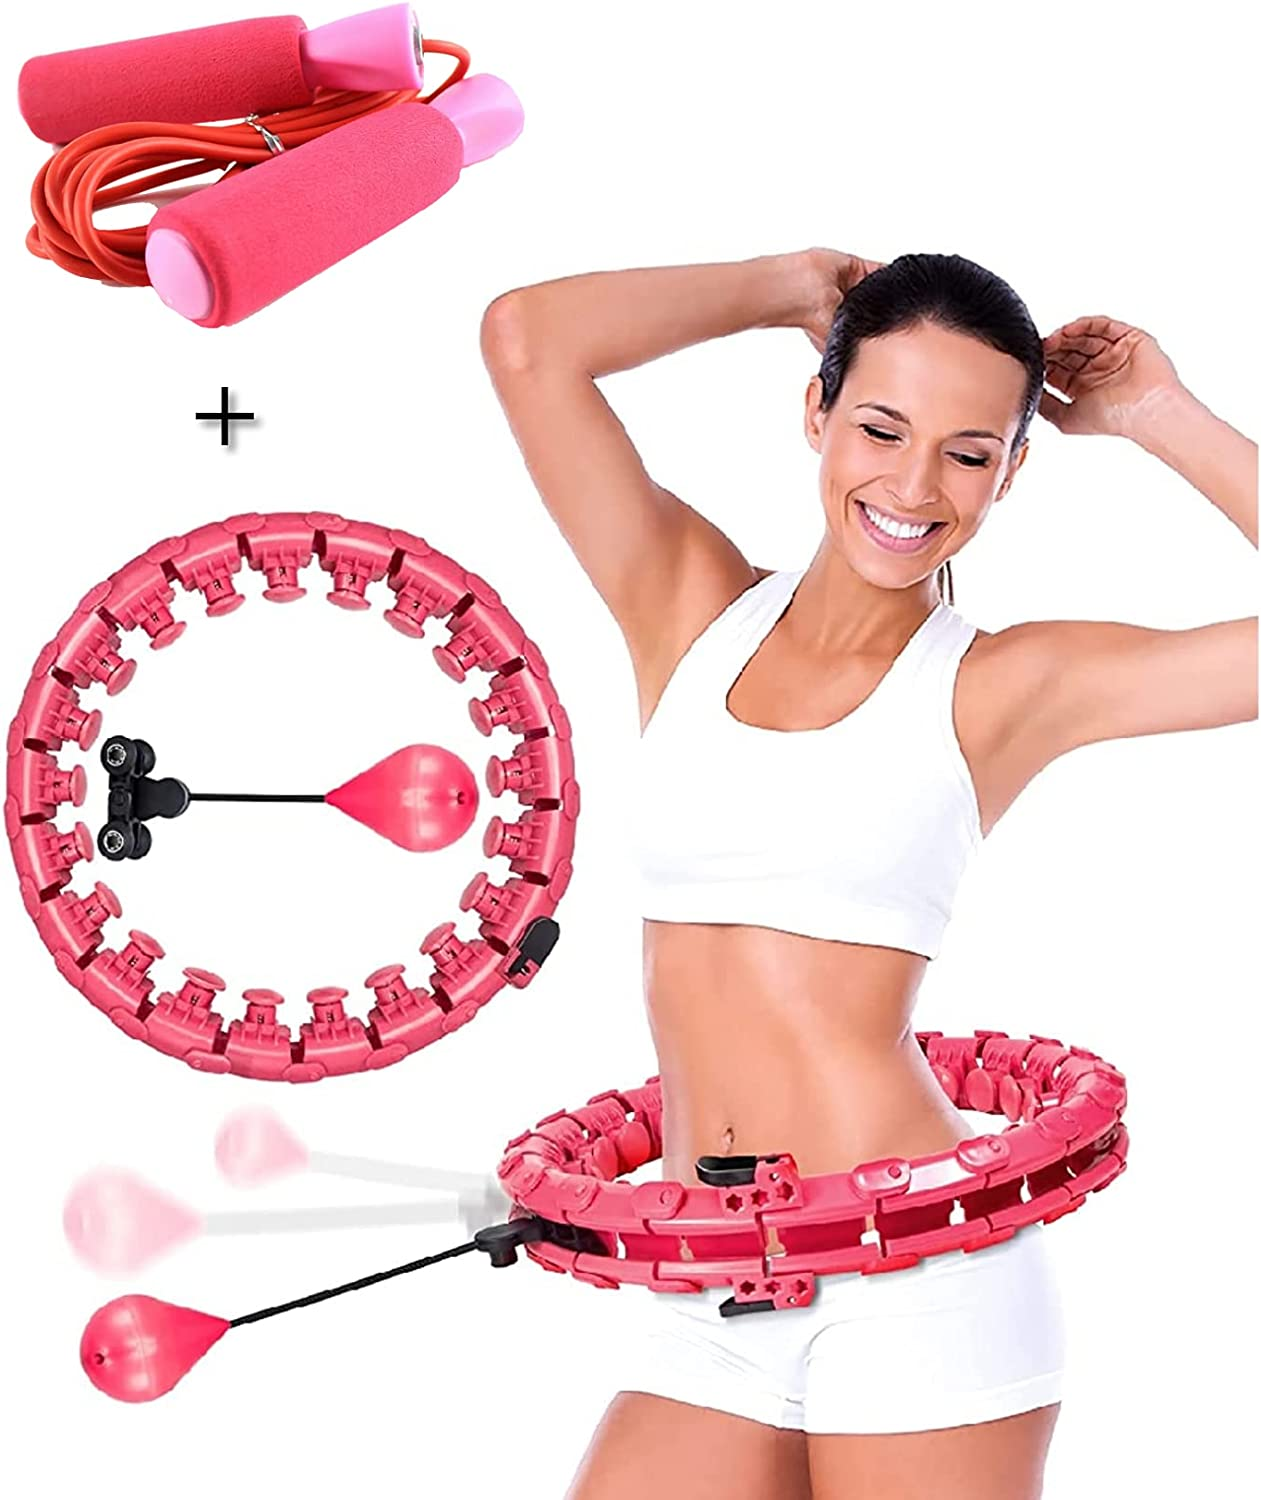 Smart Weighted Hula Challenge the lowest price of Ranking TOP9 Japan Hoop for and Adults Exercis Kids. A